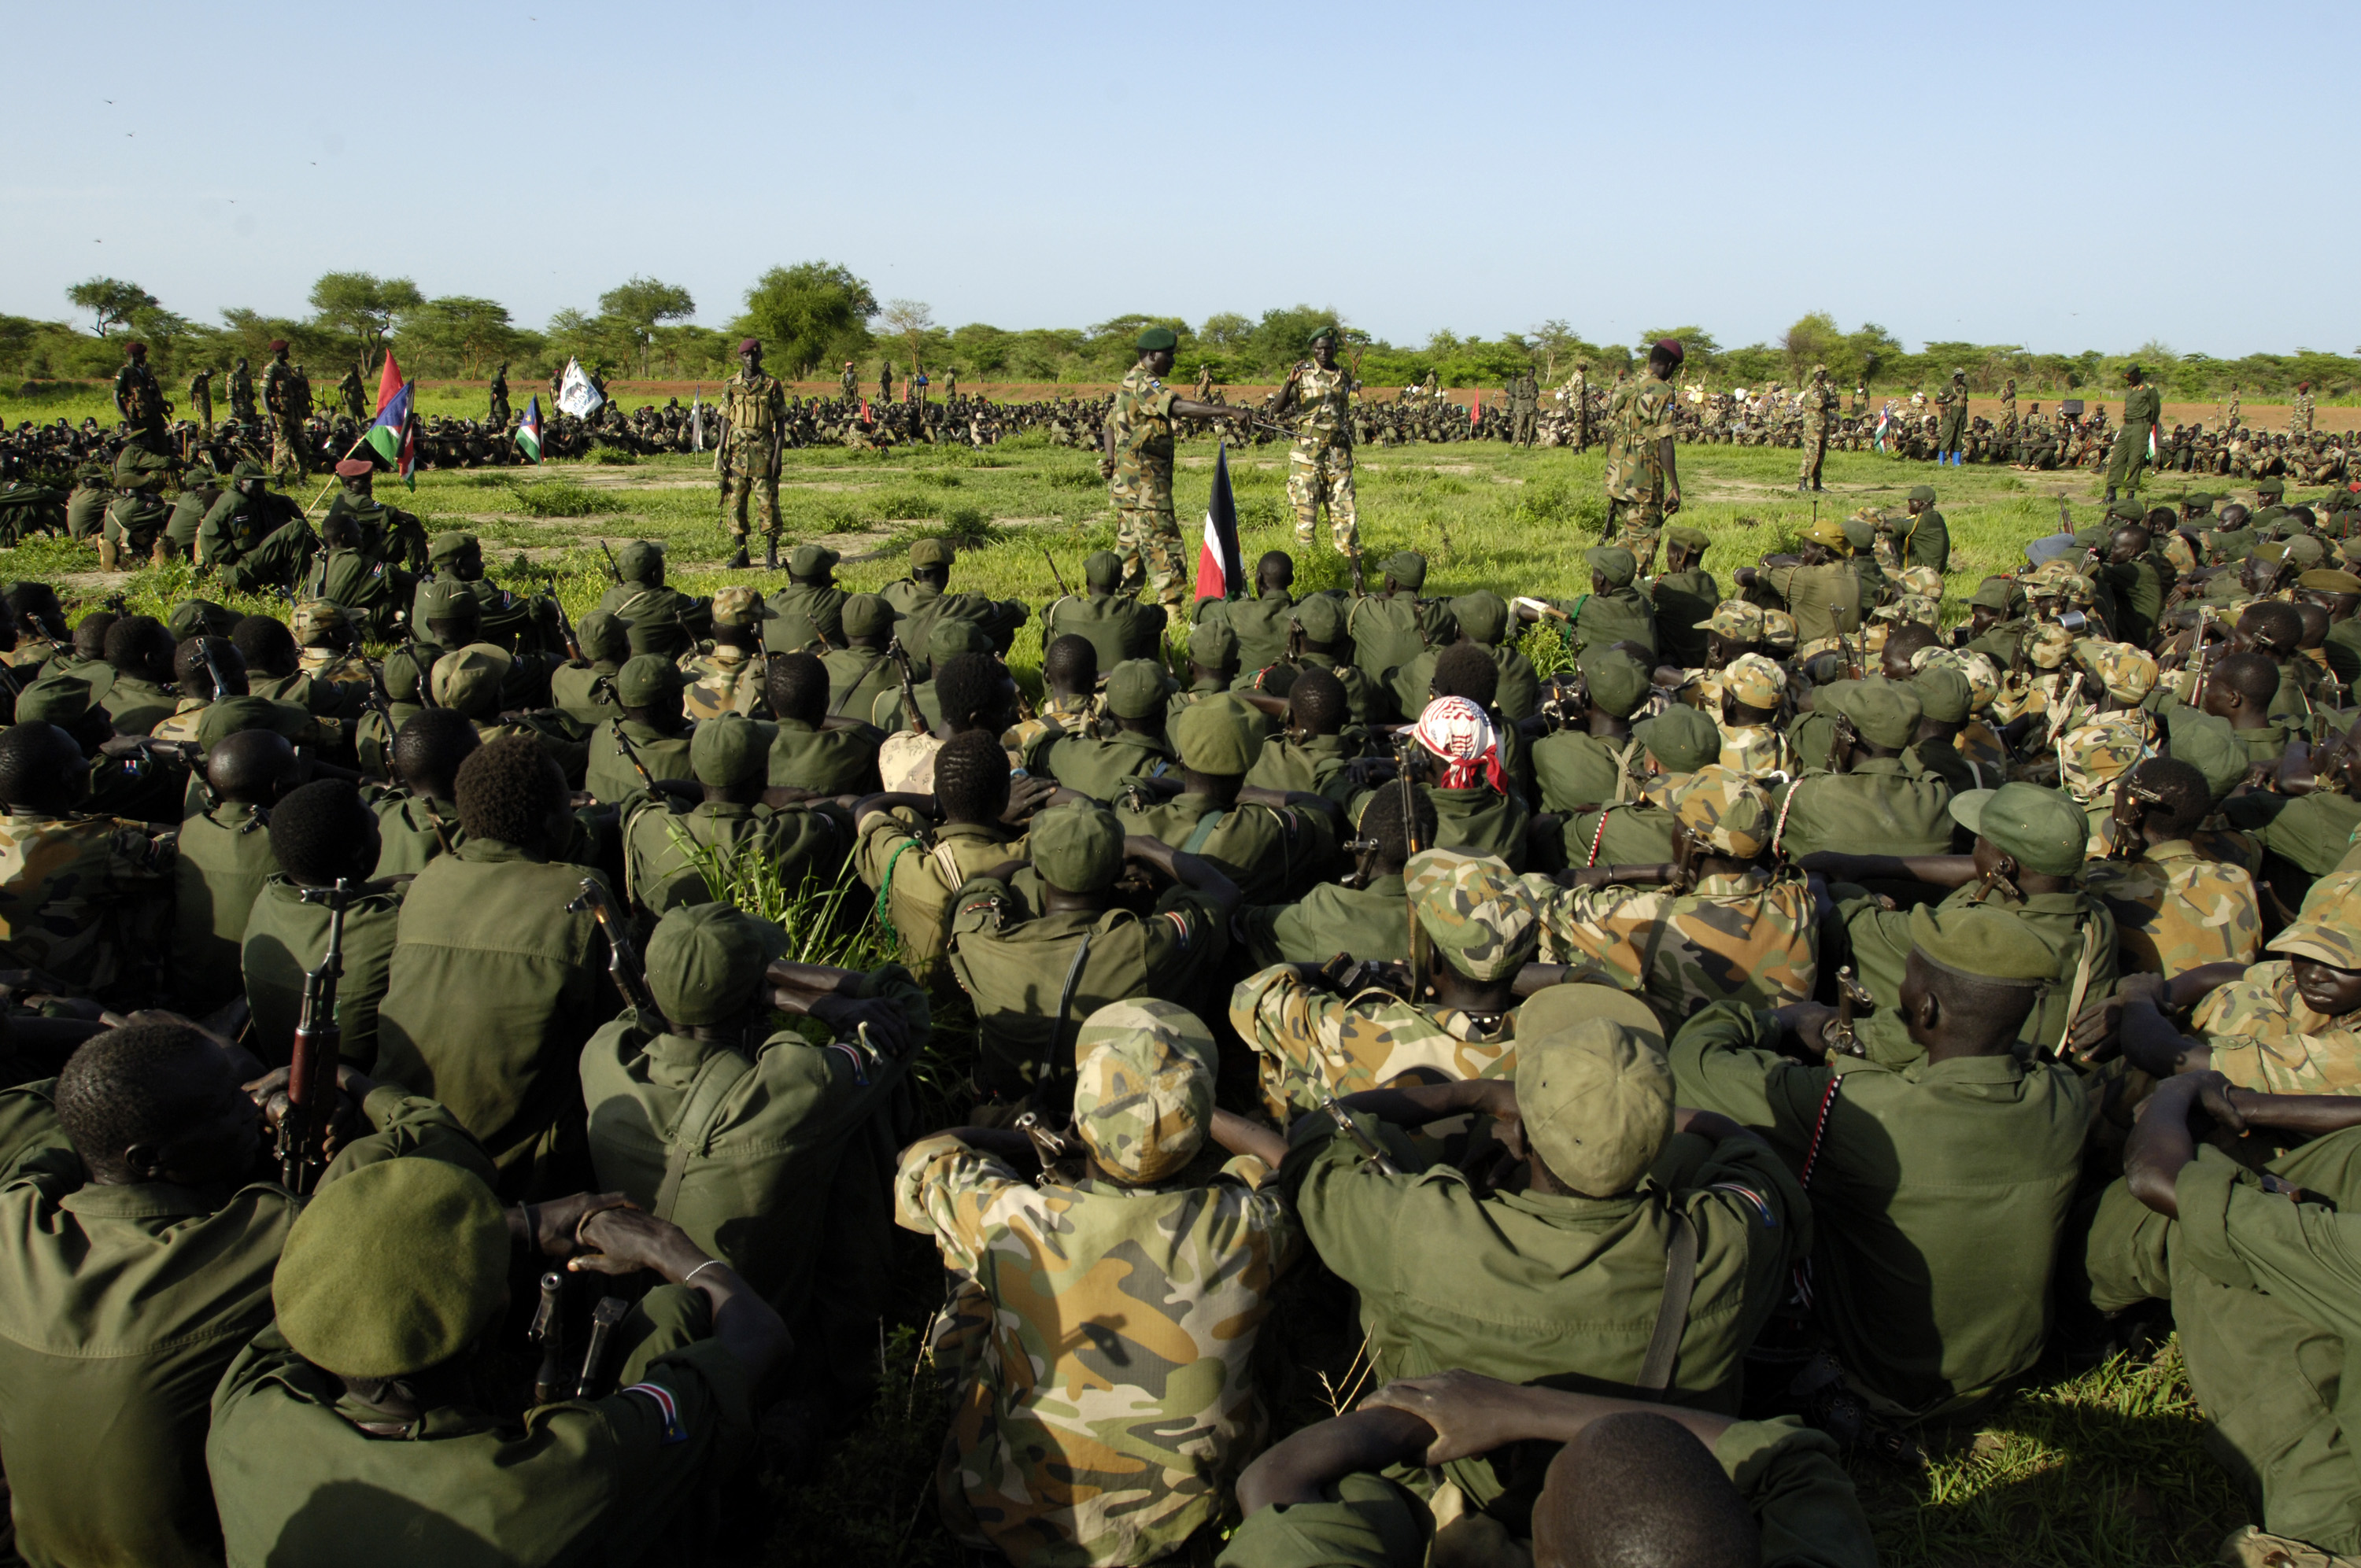 SPLA soldiers redeploy south from the Abyei area in line with the road map to resolve the Abyei crisis. Sudan. June 2008.